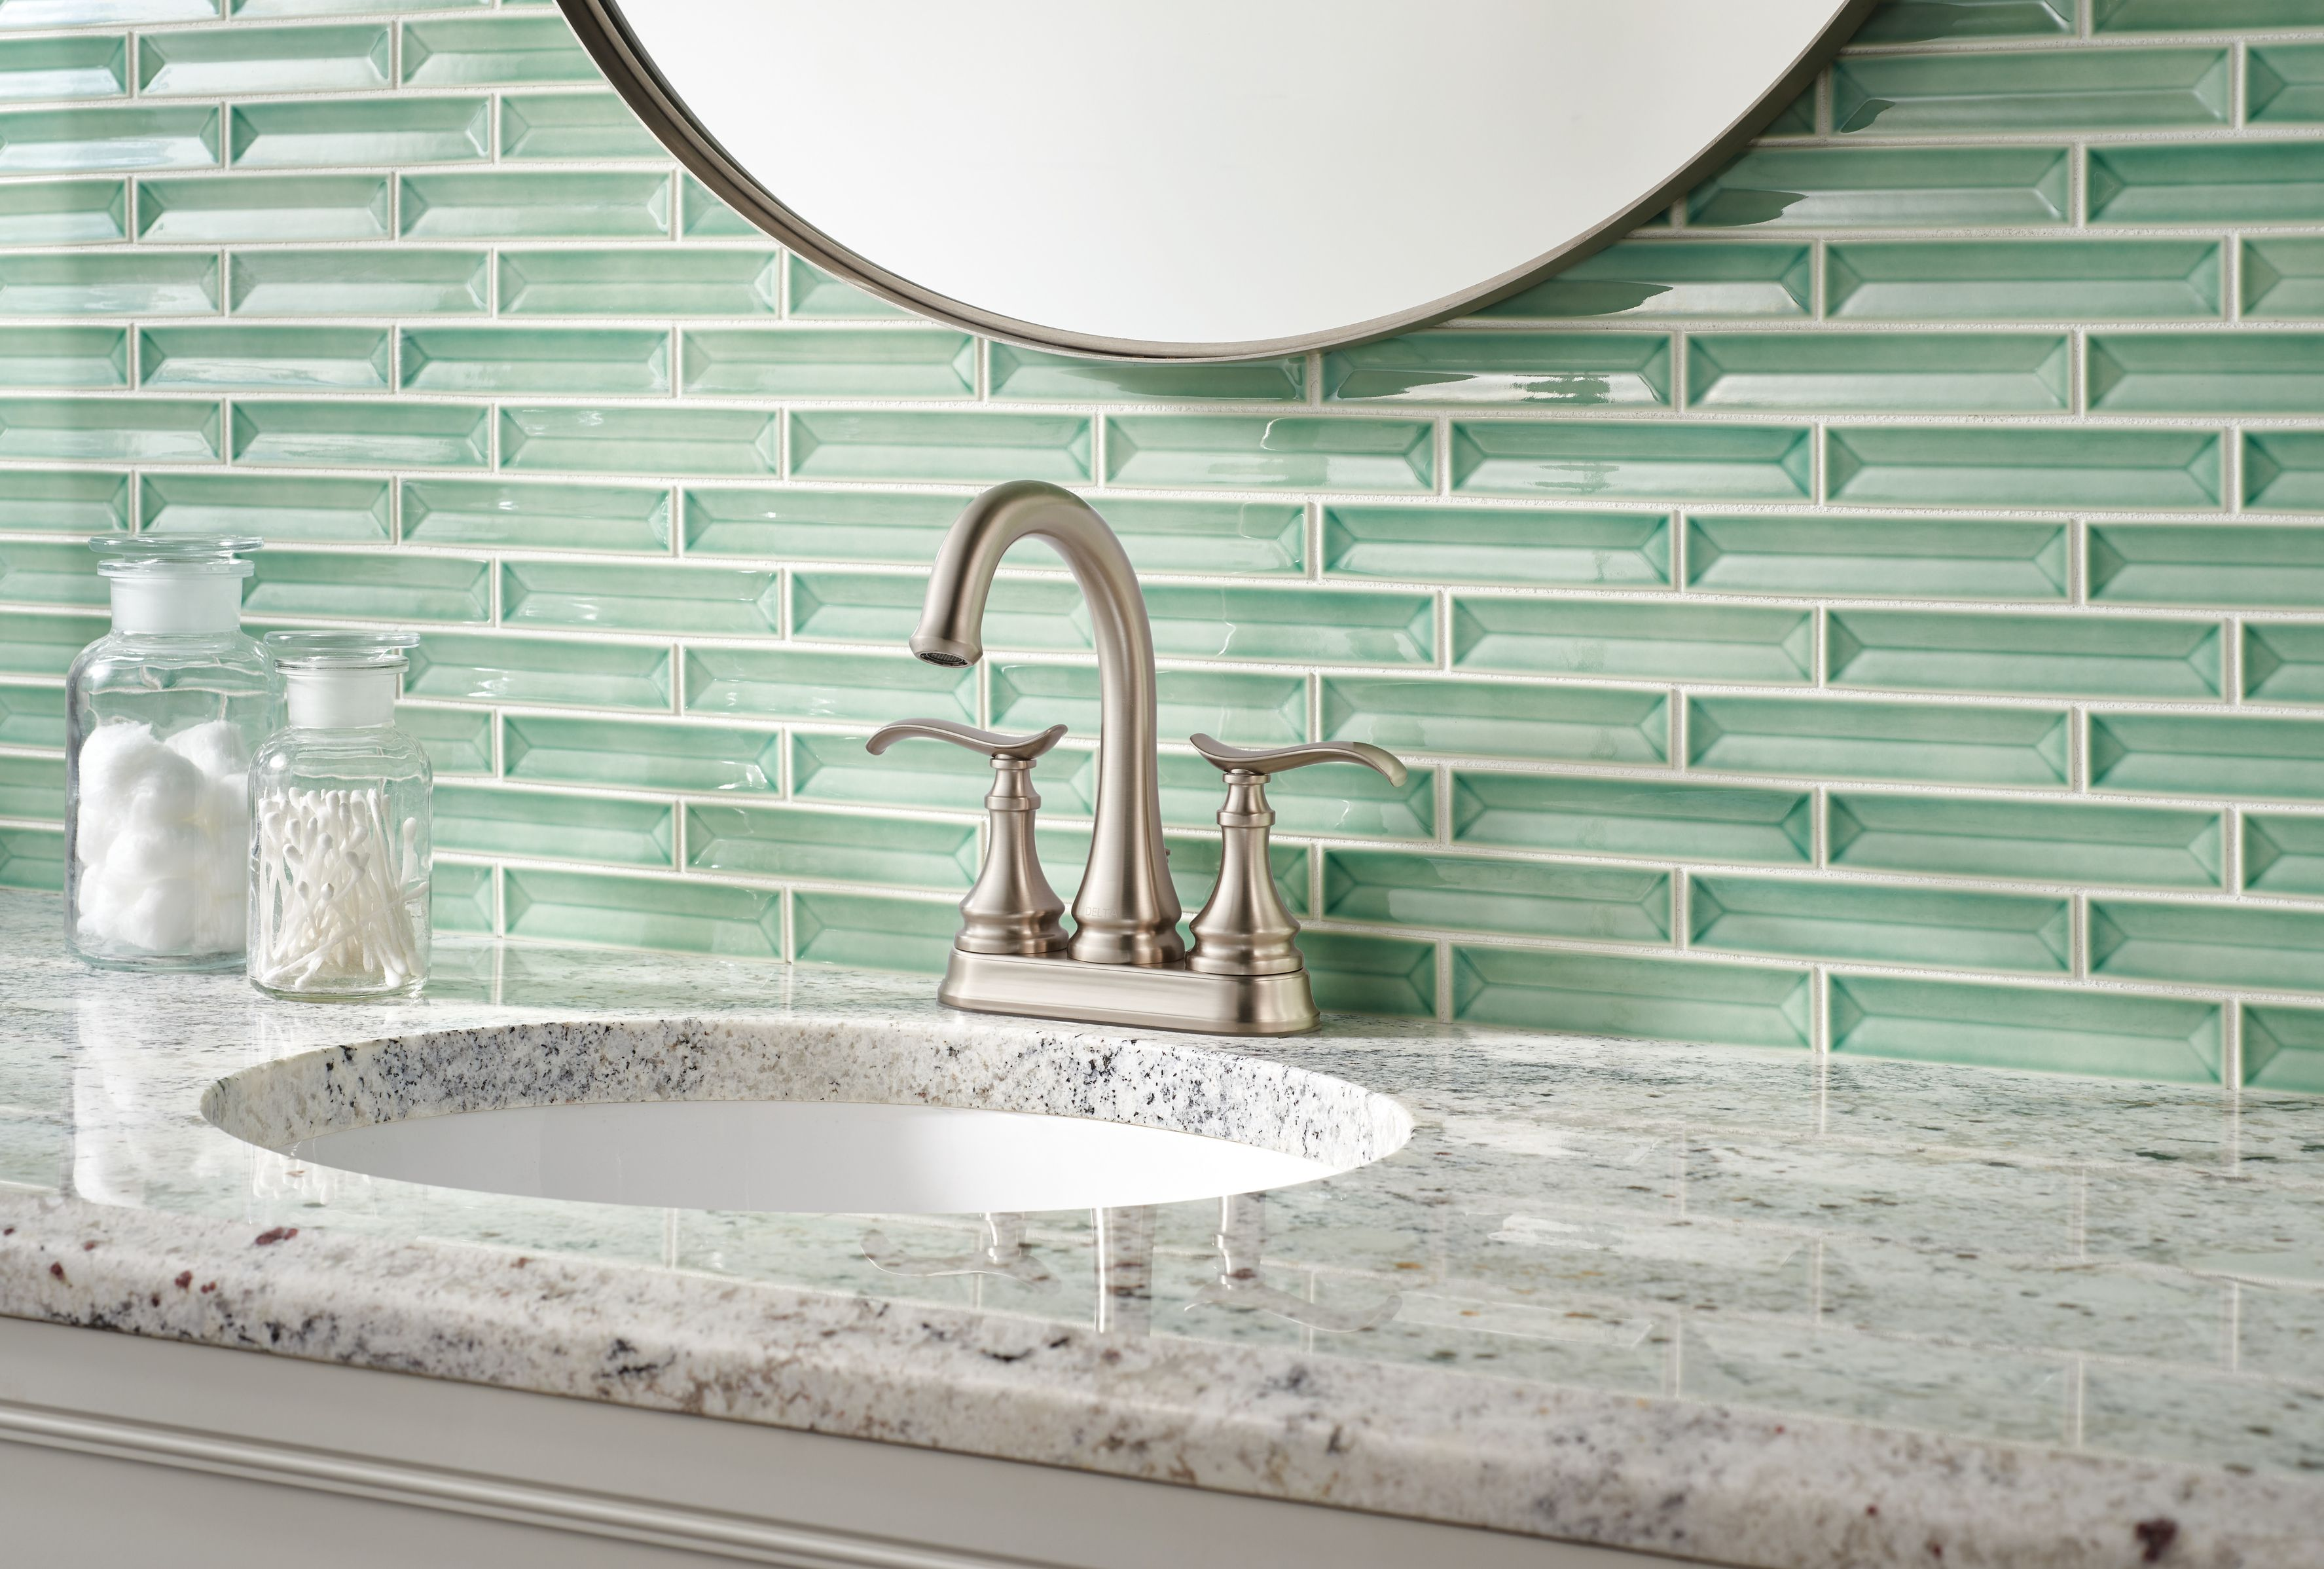 Stunning! The Brushed Nickel Faucet From The Delta Faucet